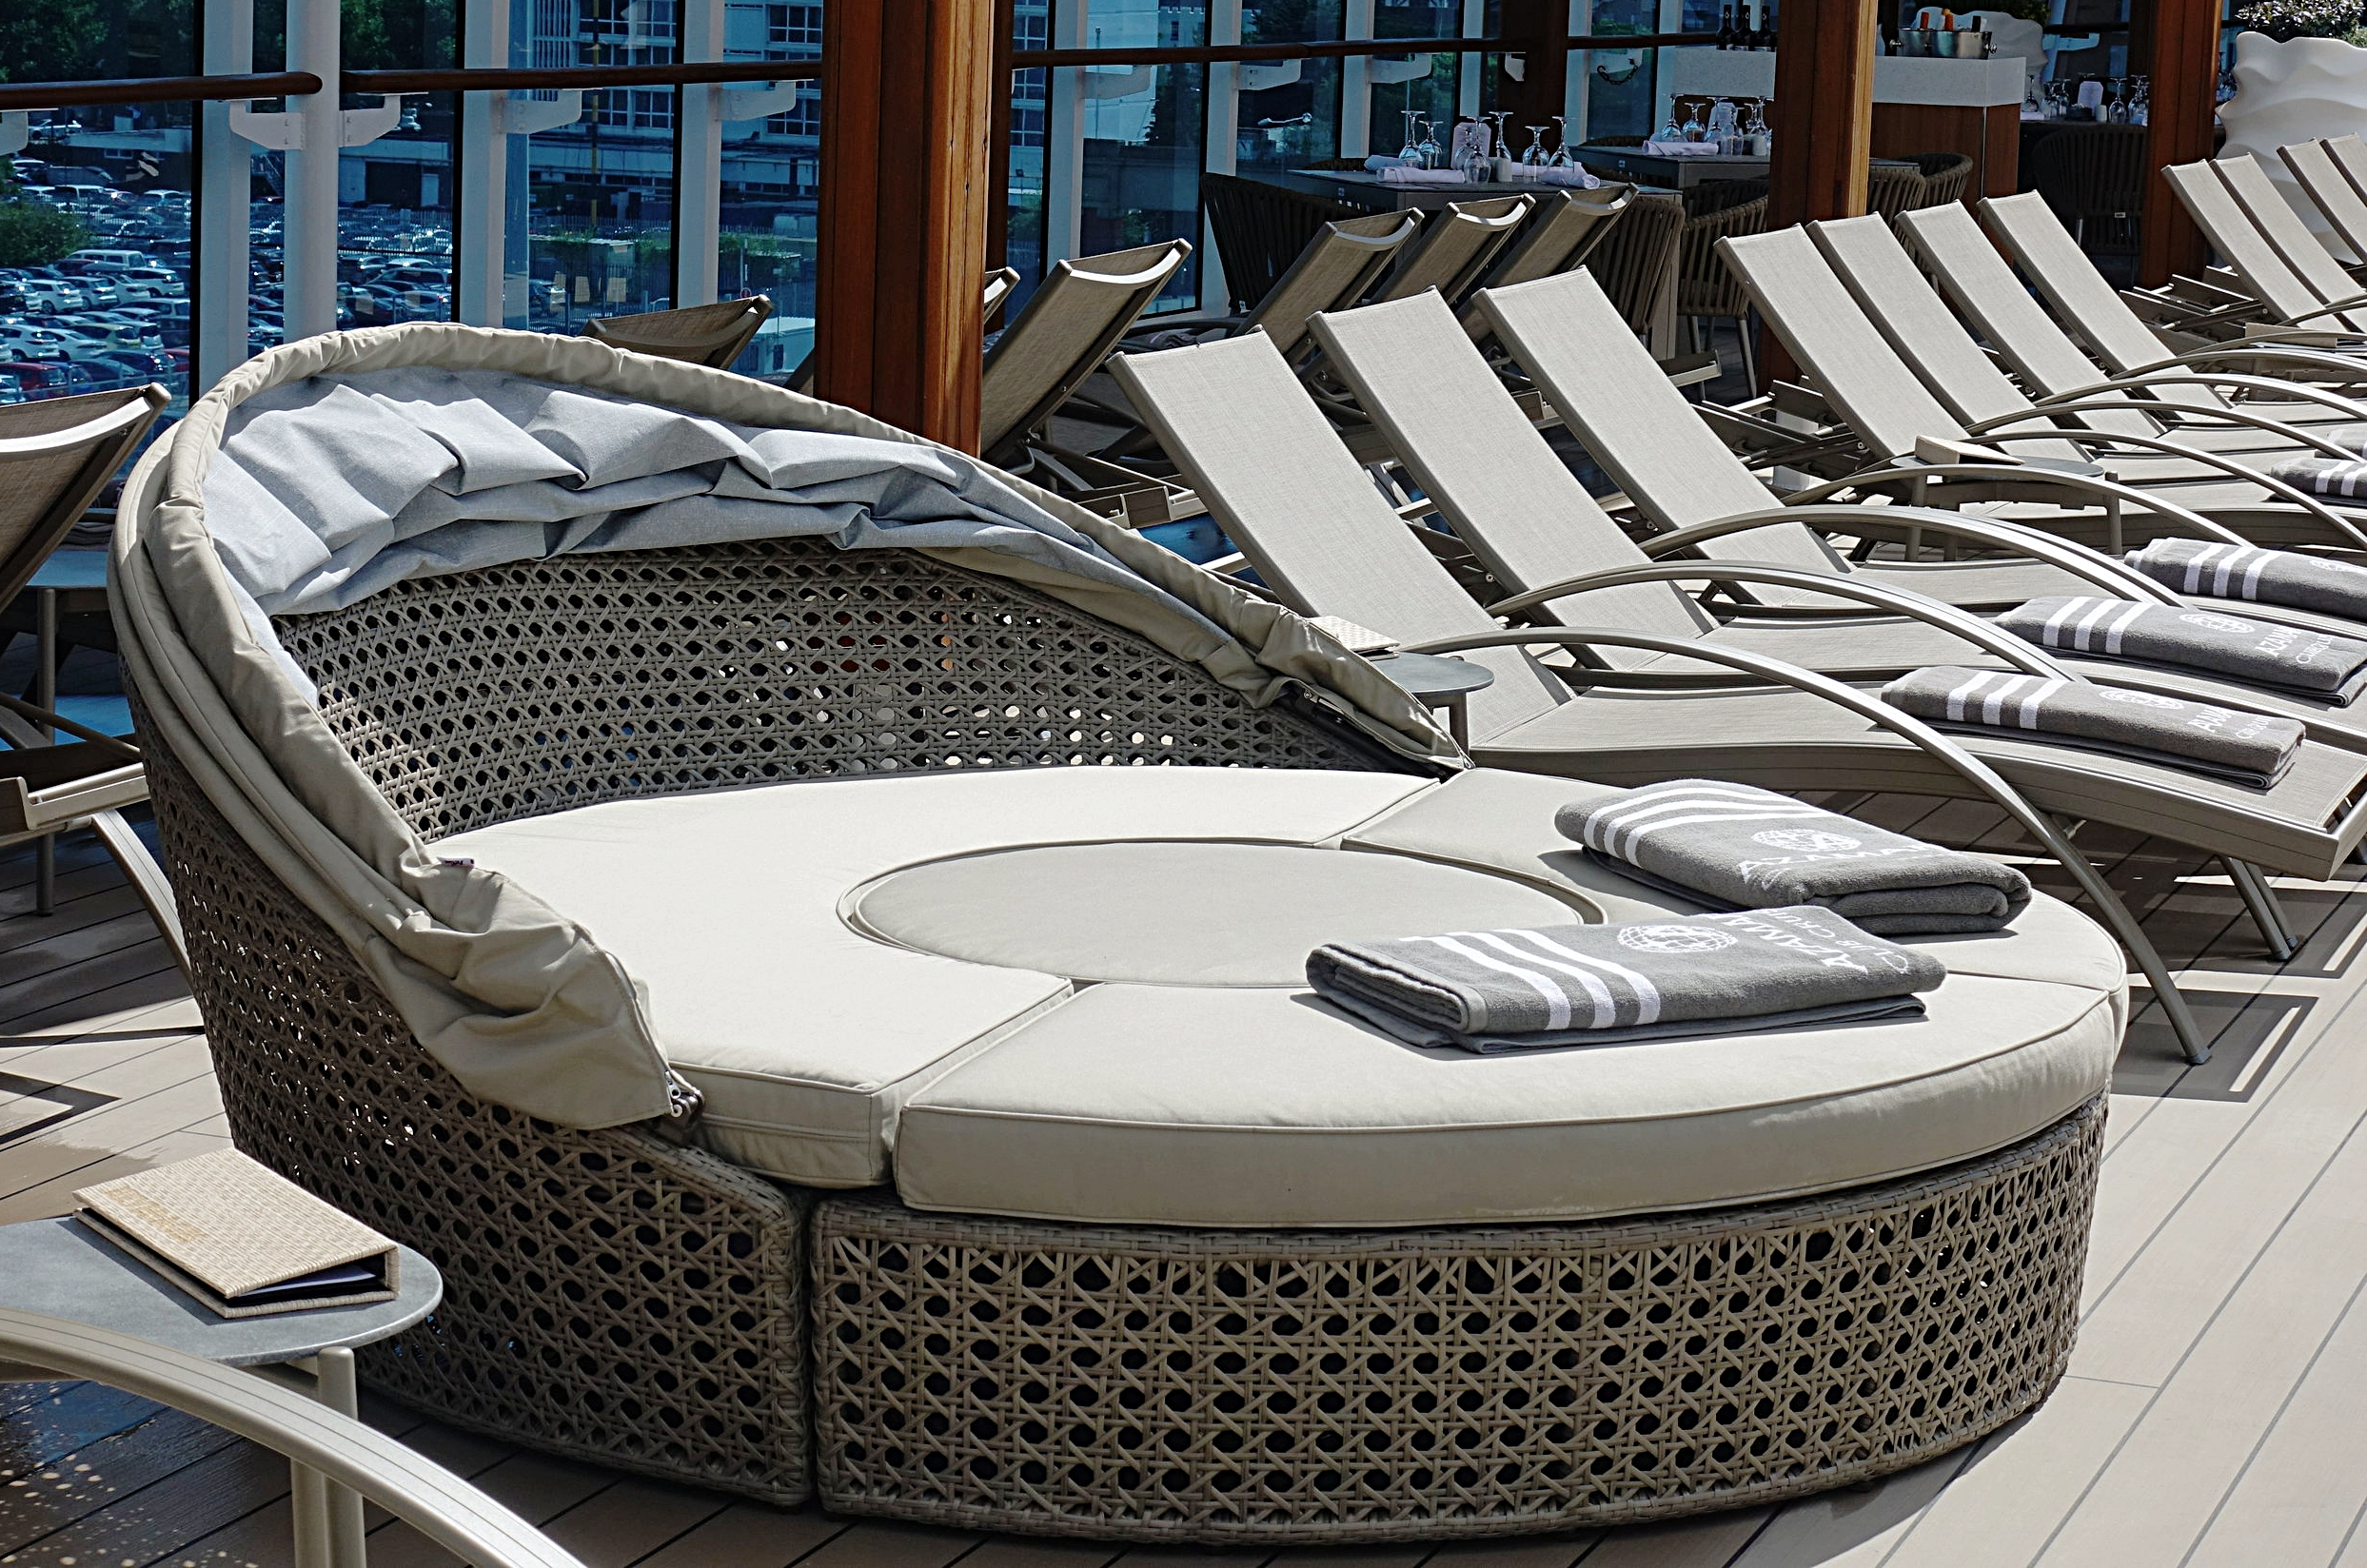 Daybeds on the pool deck.